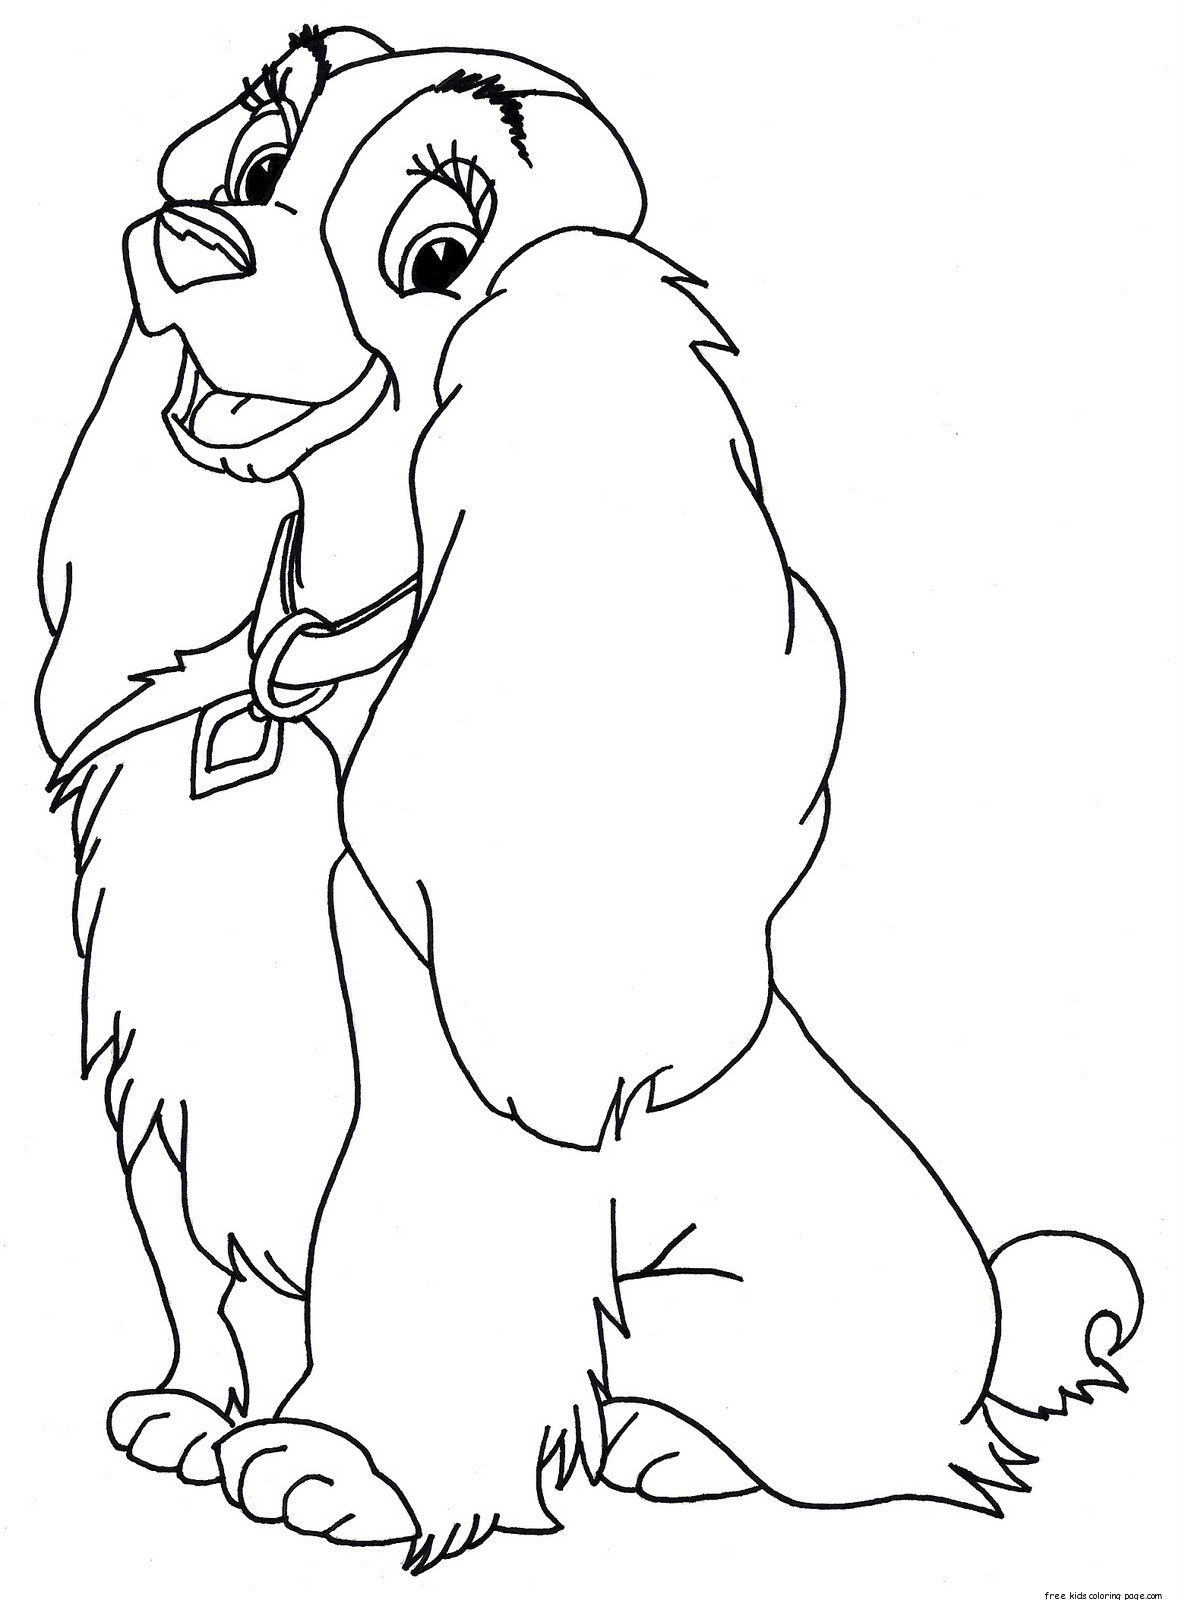 Lady and the tramp coloring pages free printable Disney animals coloring book